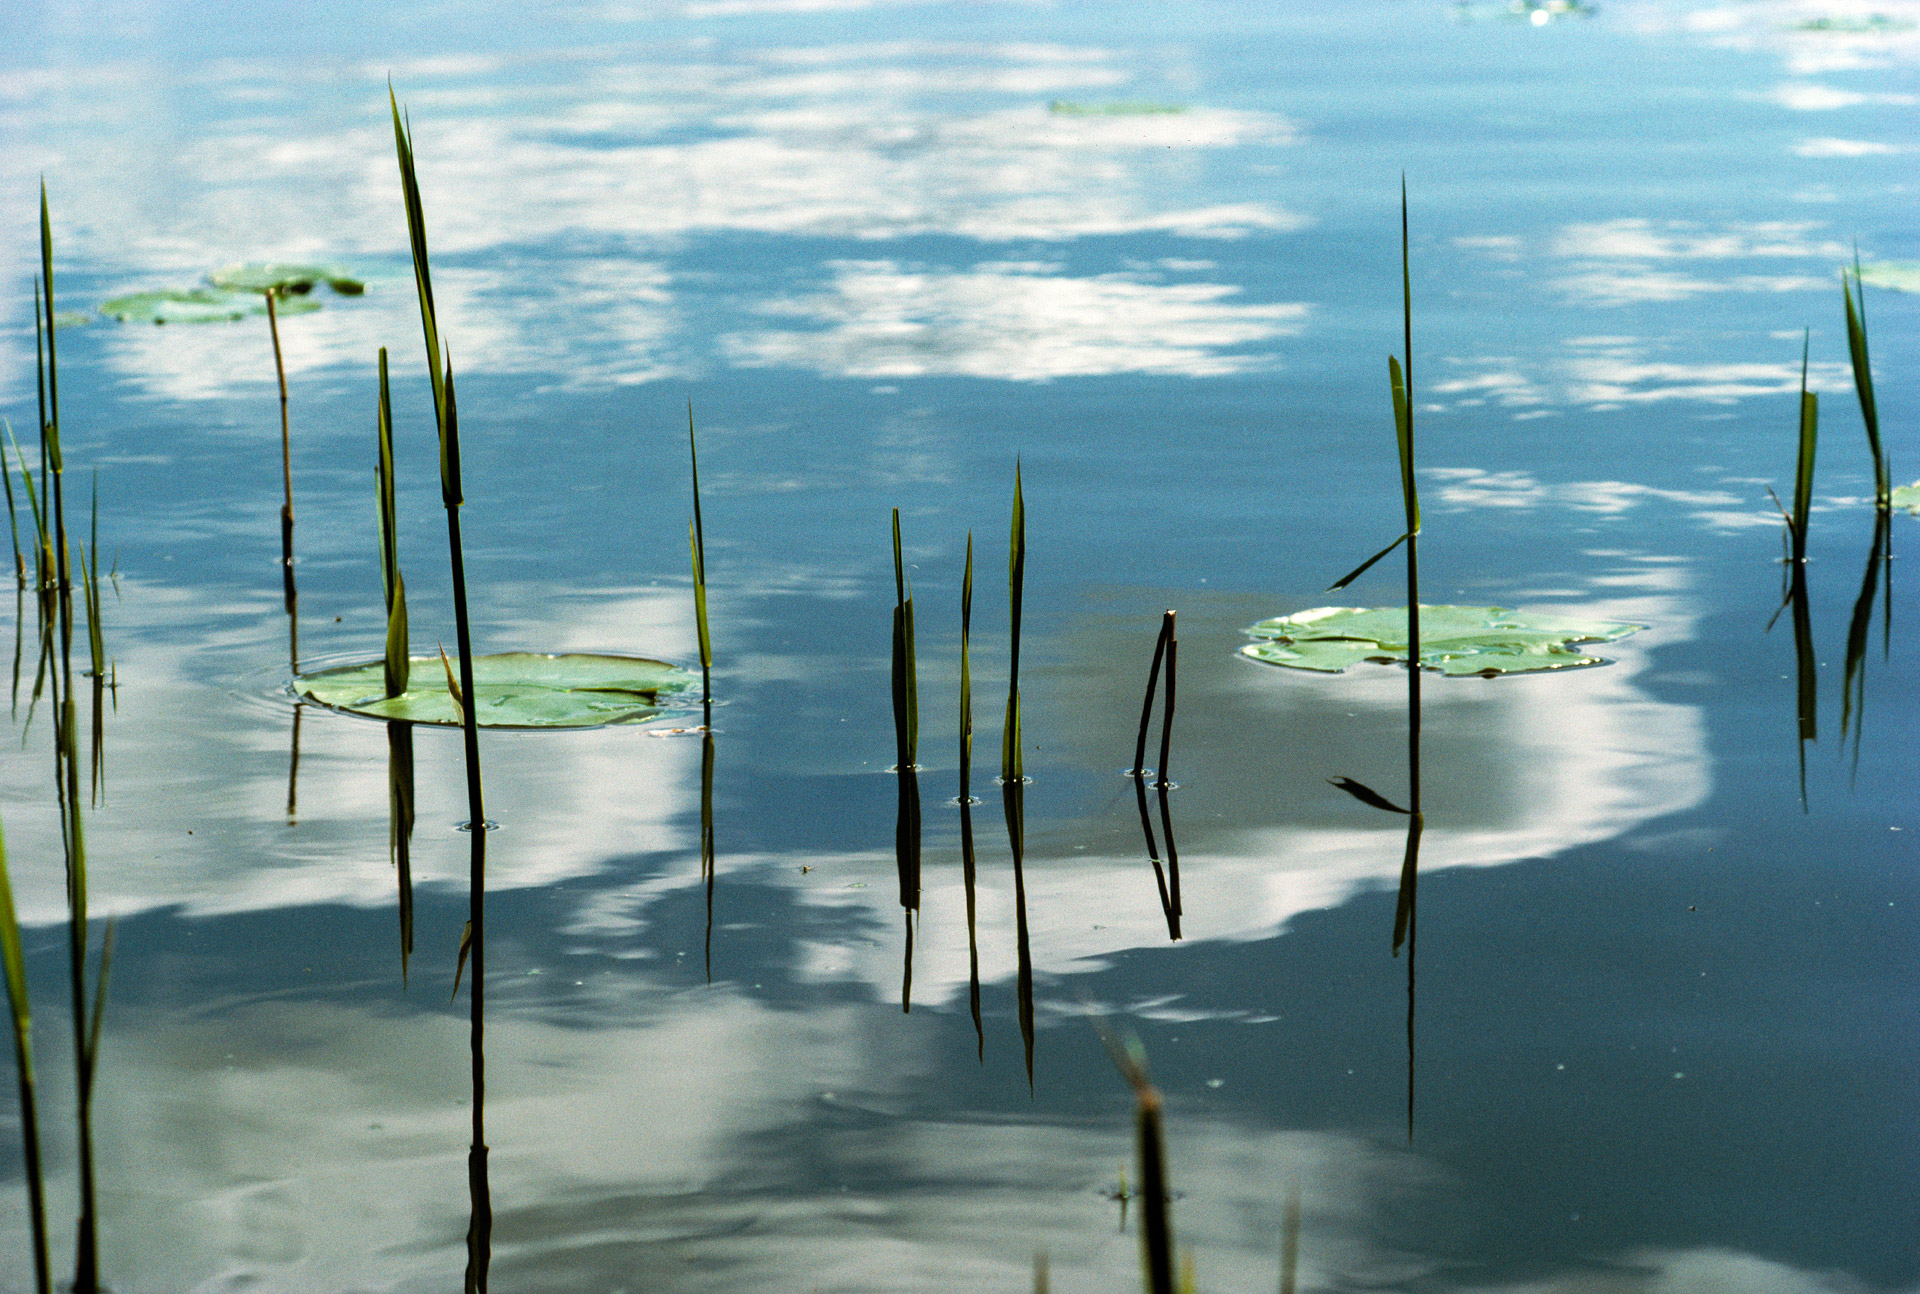 Reeds and water lilys and Lyngby Sø mirroring the sky and clouds